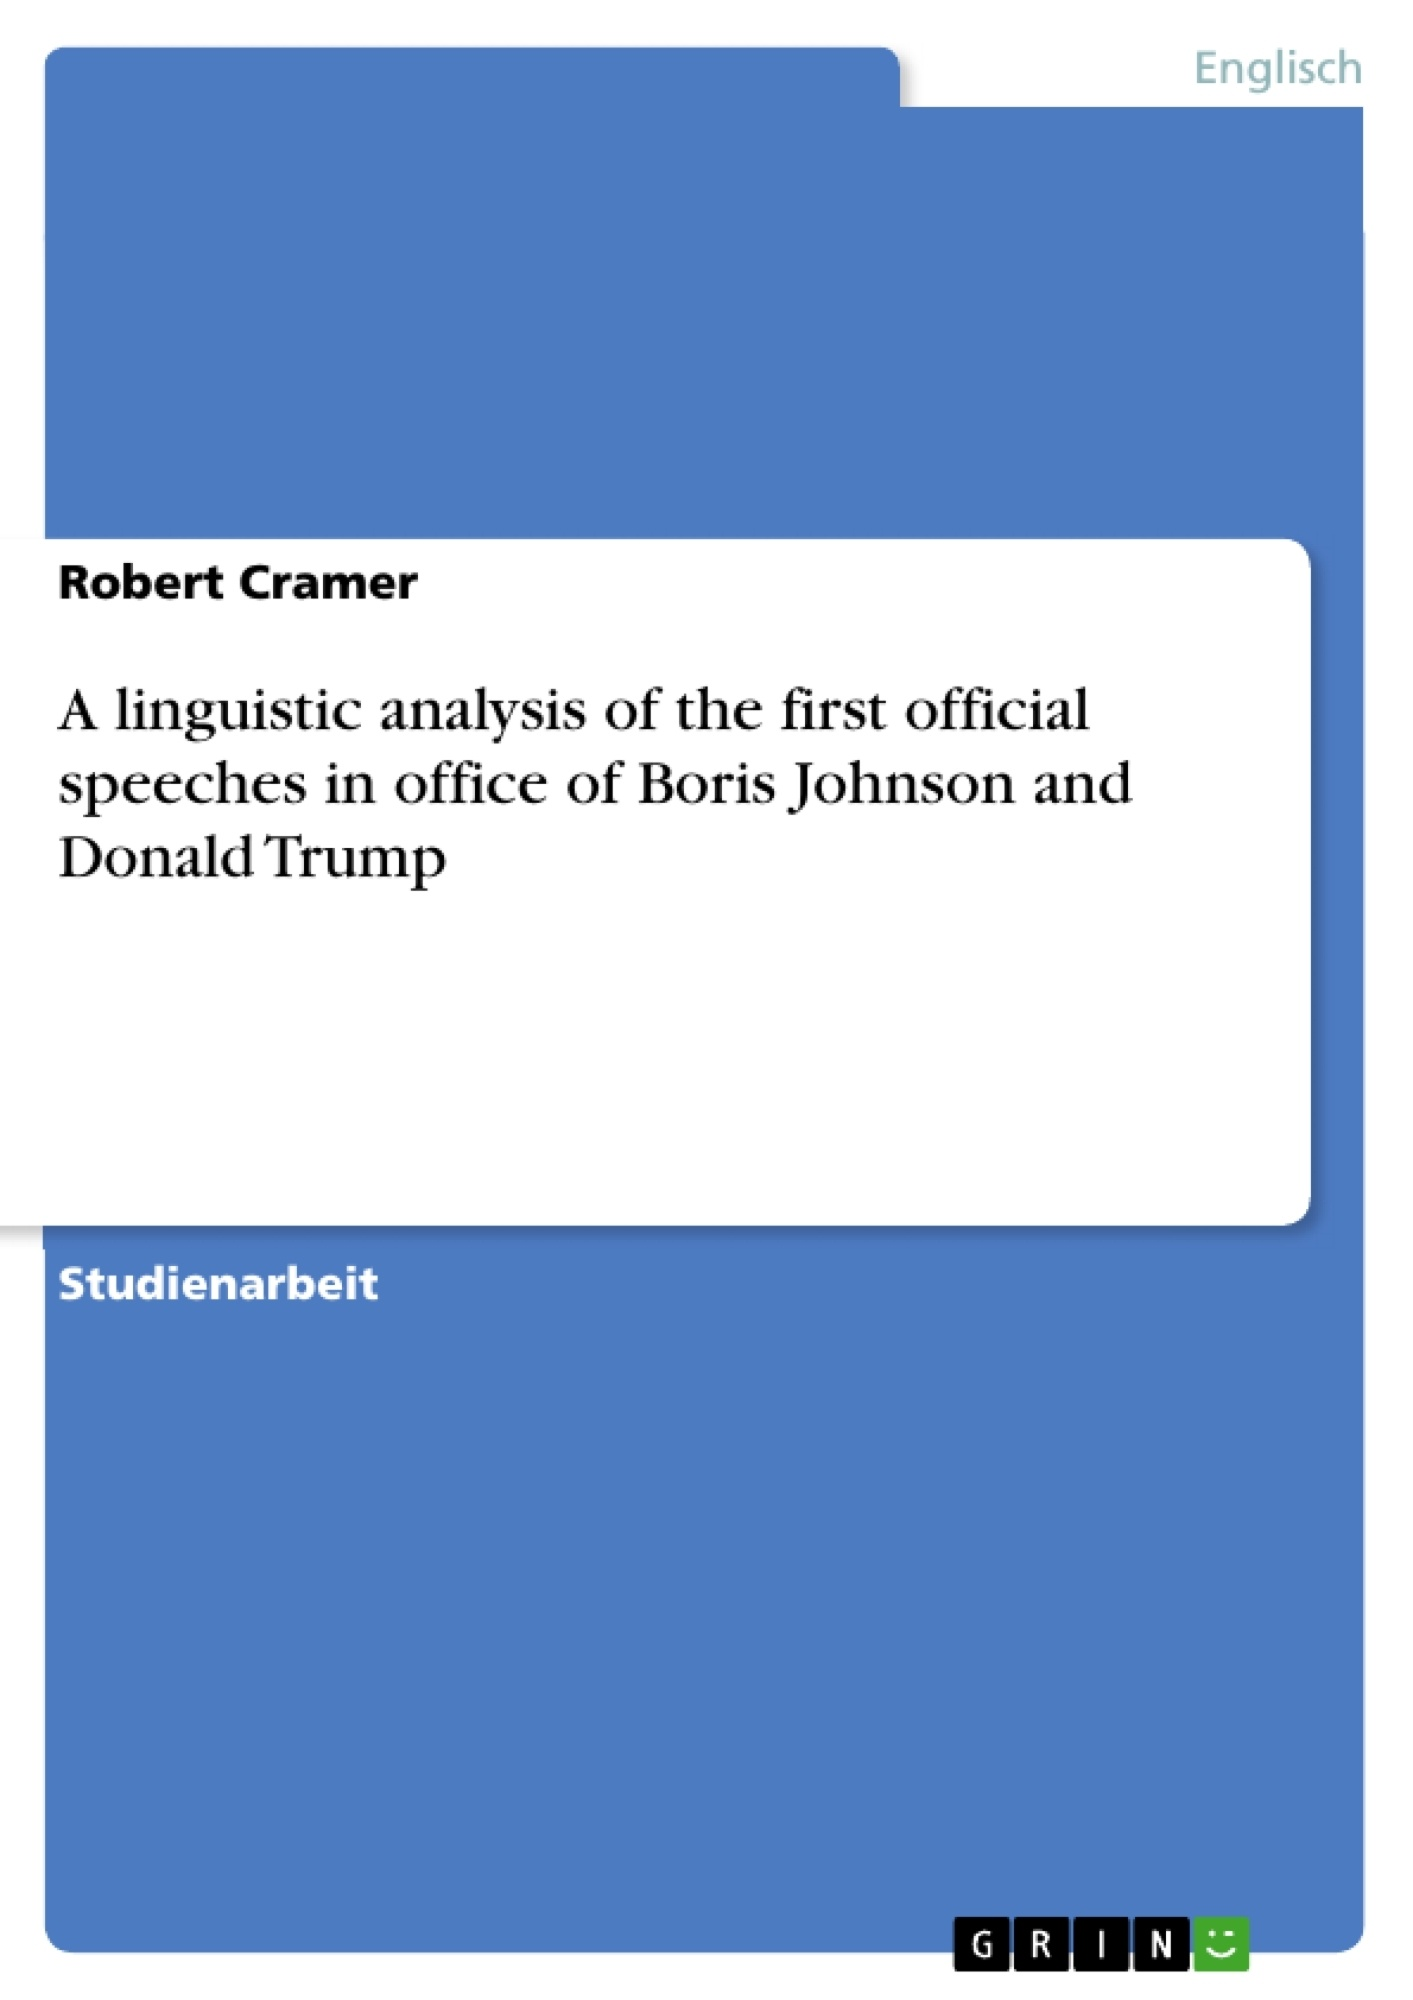 Titel: A linguistic analysis of the first official speeches in office of Boris Johnson and Donald Trump